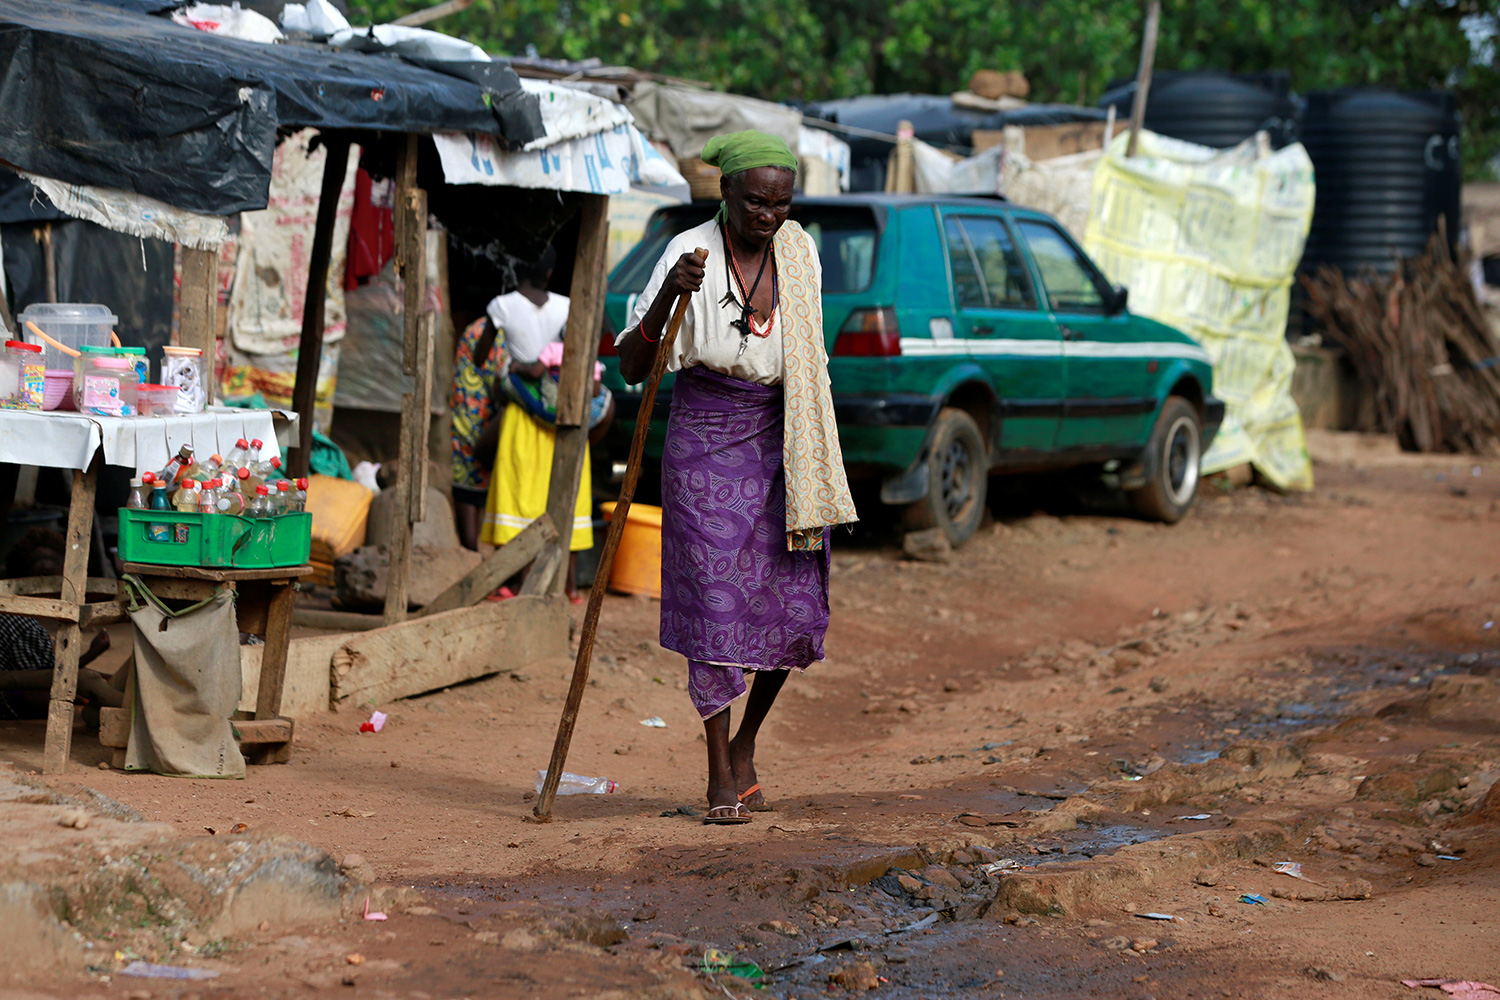 The photo shows the older woman walking along a muddy unpaved road.